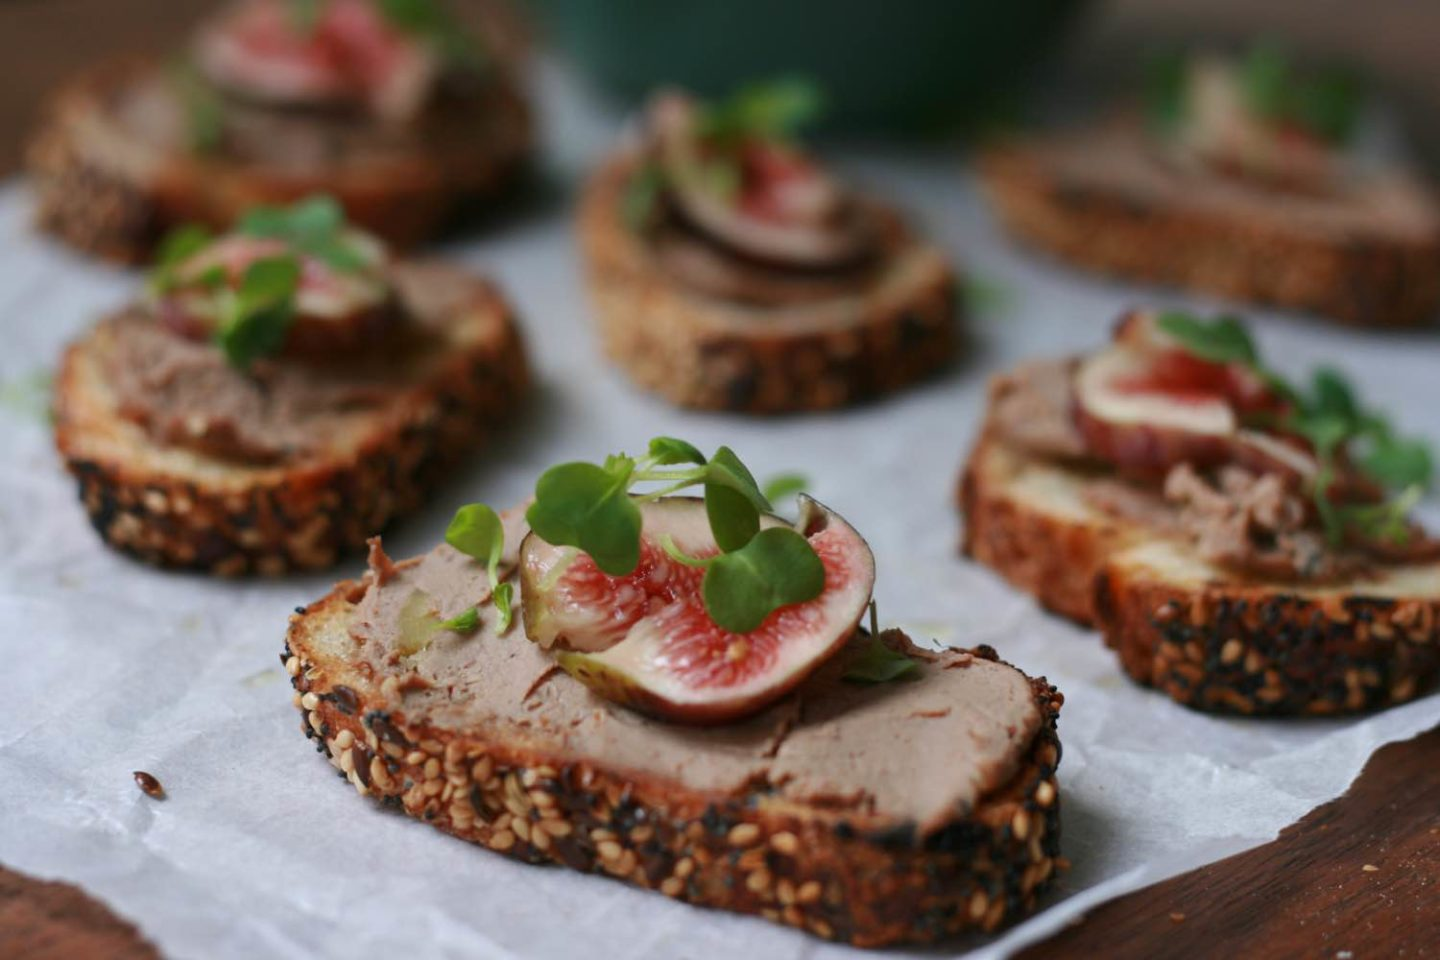 Whisky and rosemary pate with fresh figs